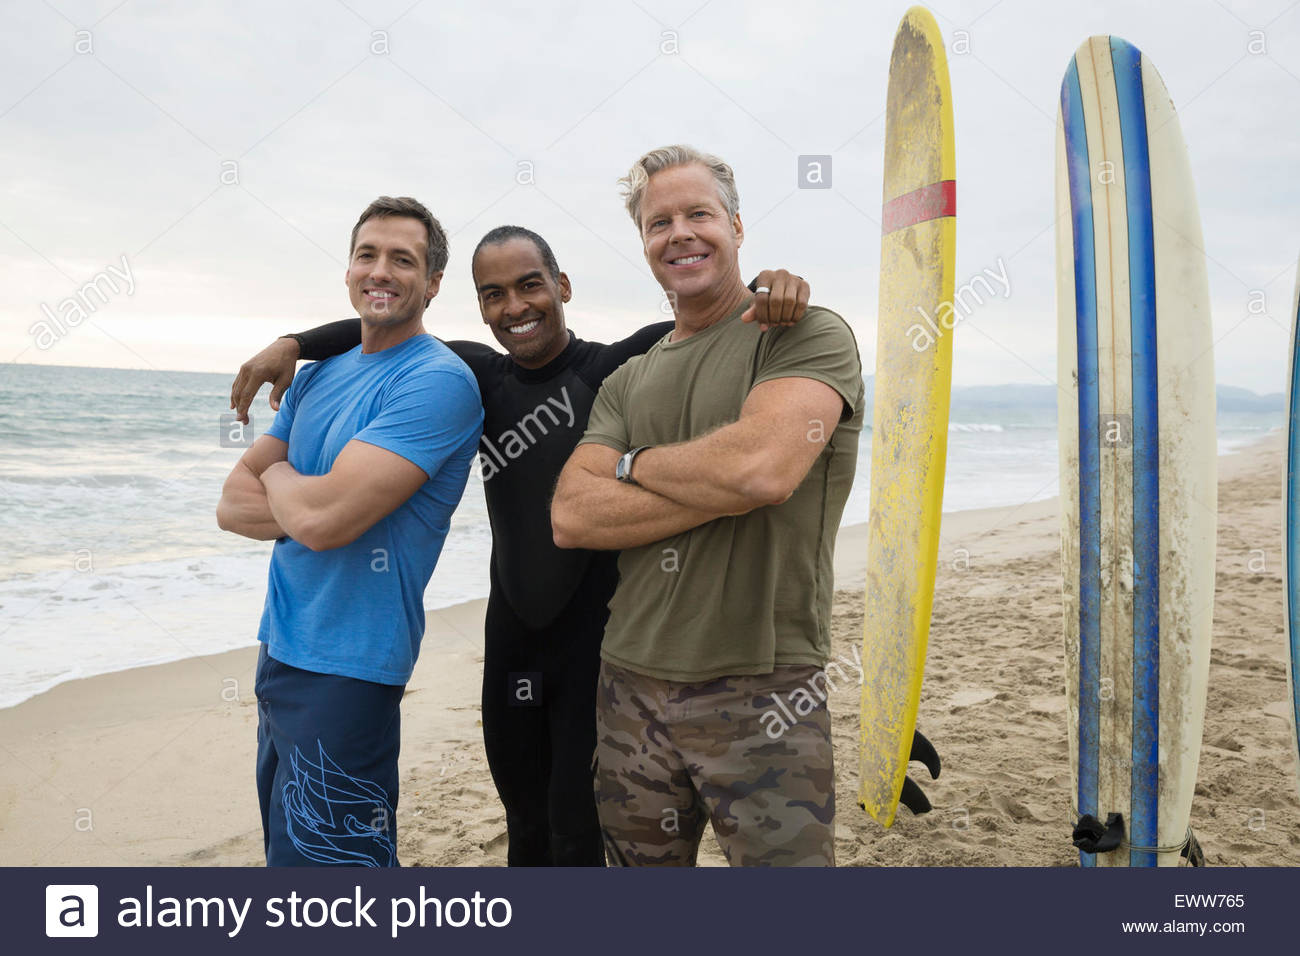 Portrait smiling men with surfboards on beach - Stock Image